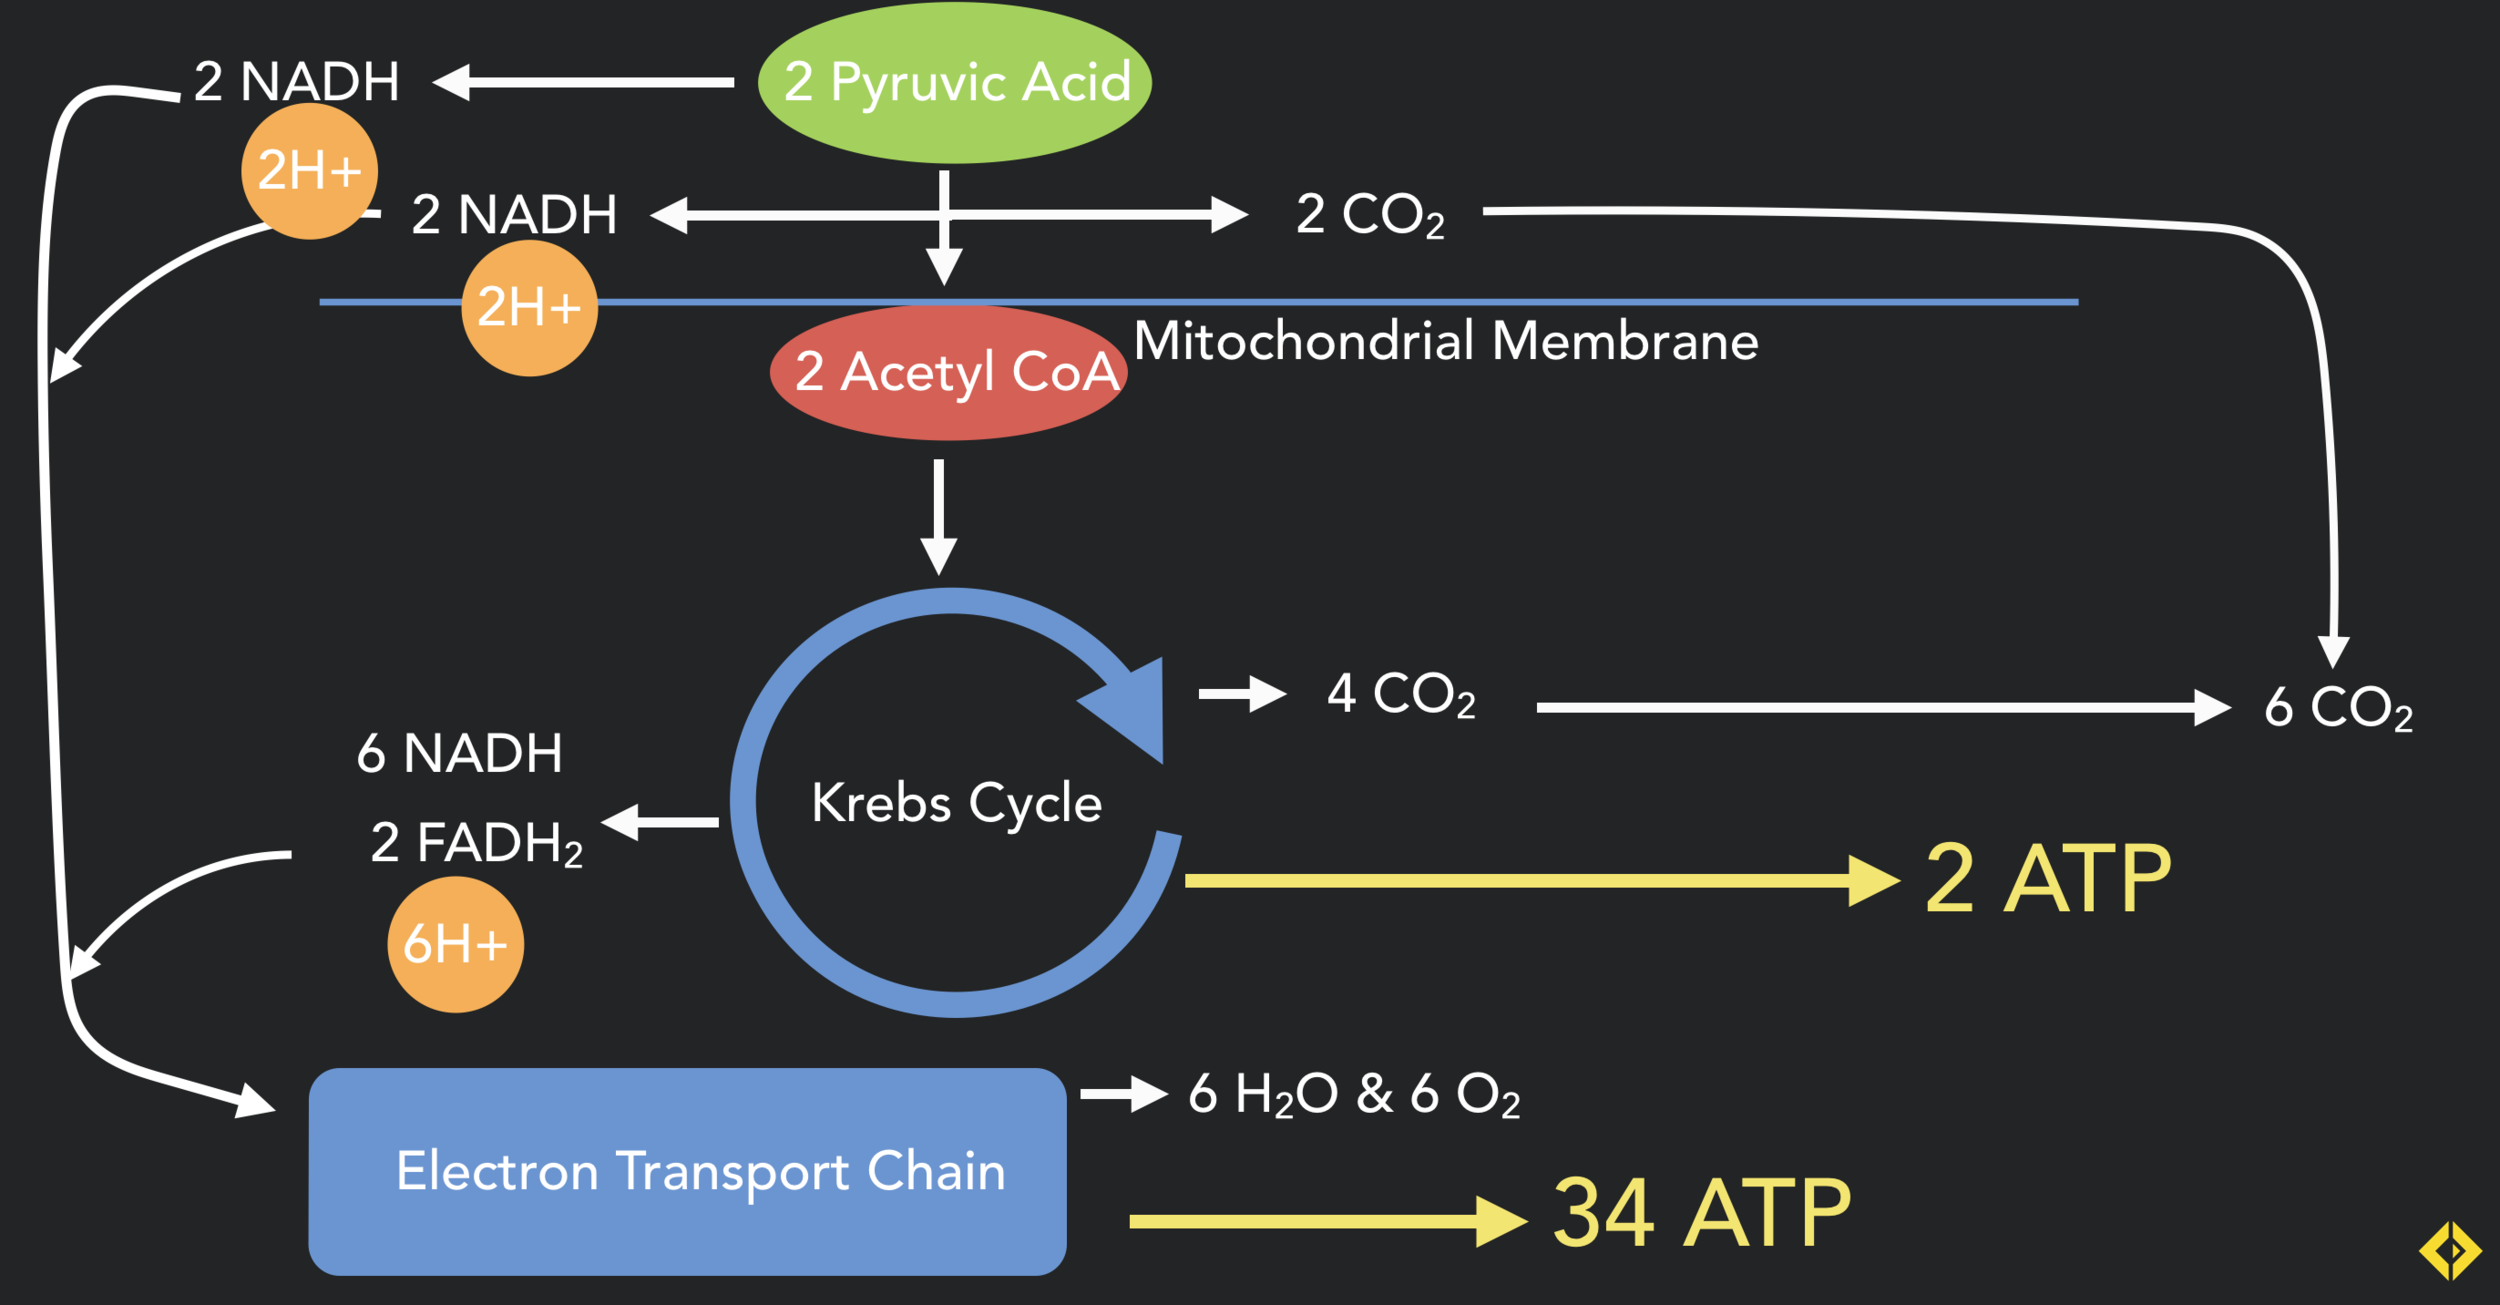 The ATP production process within the mitochondria, the pyruvate produced at the end of aerobic glycolysis is converted to acetyl CoA and enters the Krebs (citric acid) cycle. The real energetic power house of the mitorchondria is the electron transport chain which takes Hydrogen ions, NADH and FADH and pumps out huge amonuts of ATP.